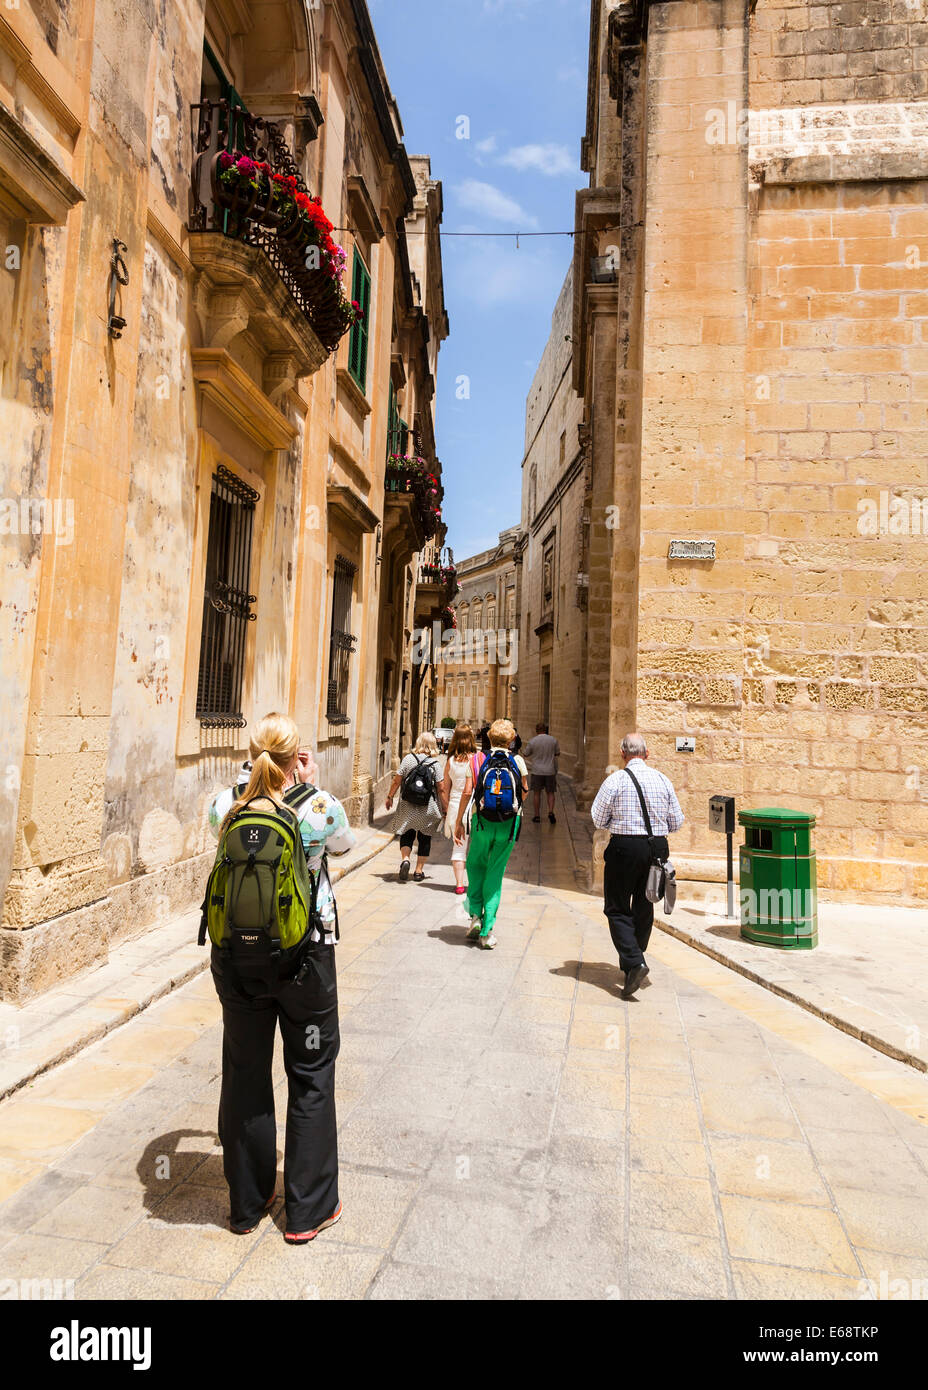 A group of tourists heading down one of Mdina's narrow streets, Malta. - Stock Image